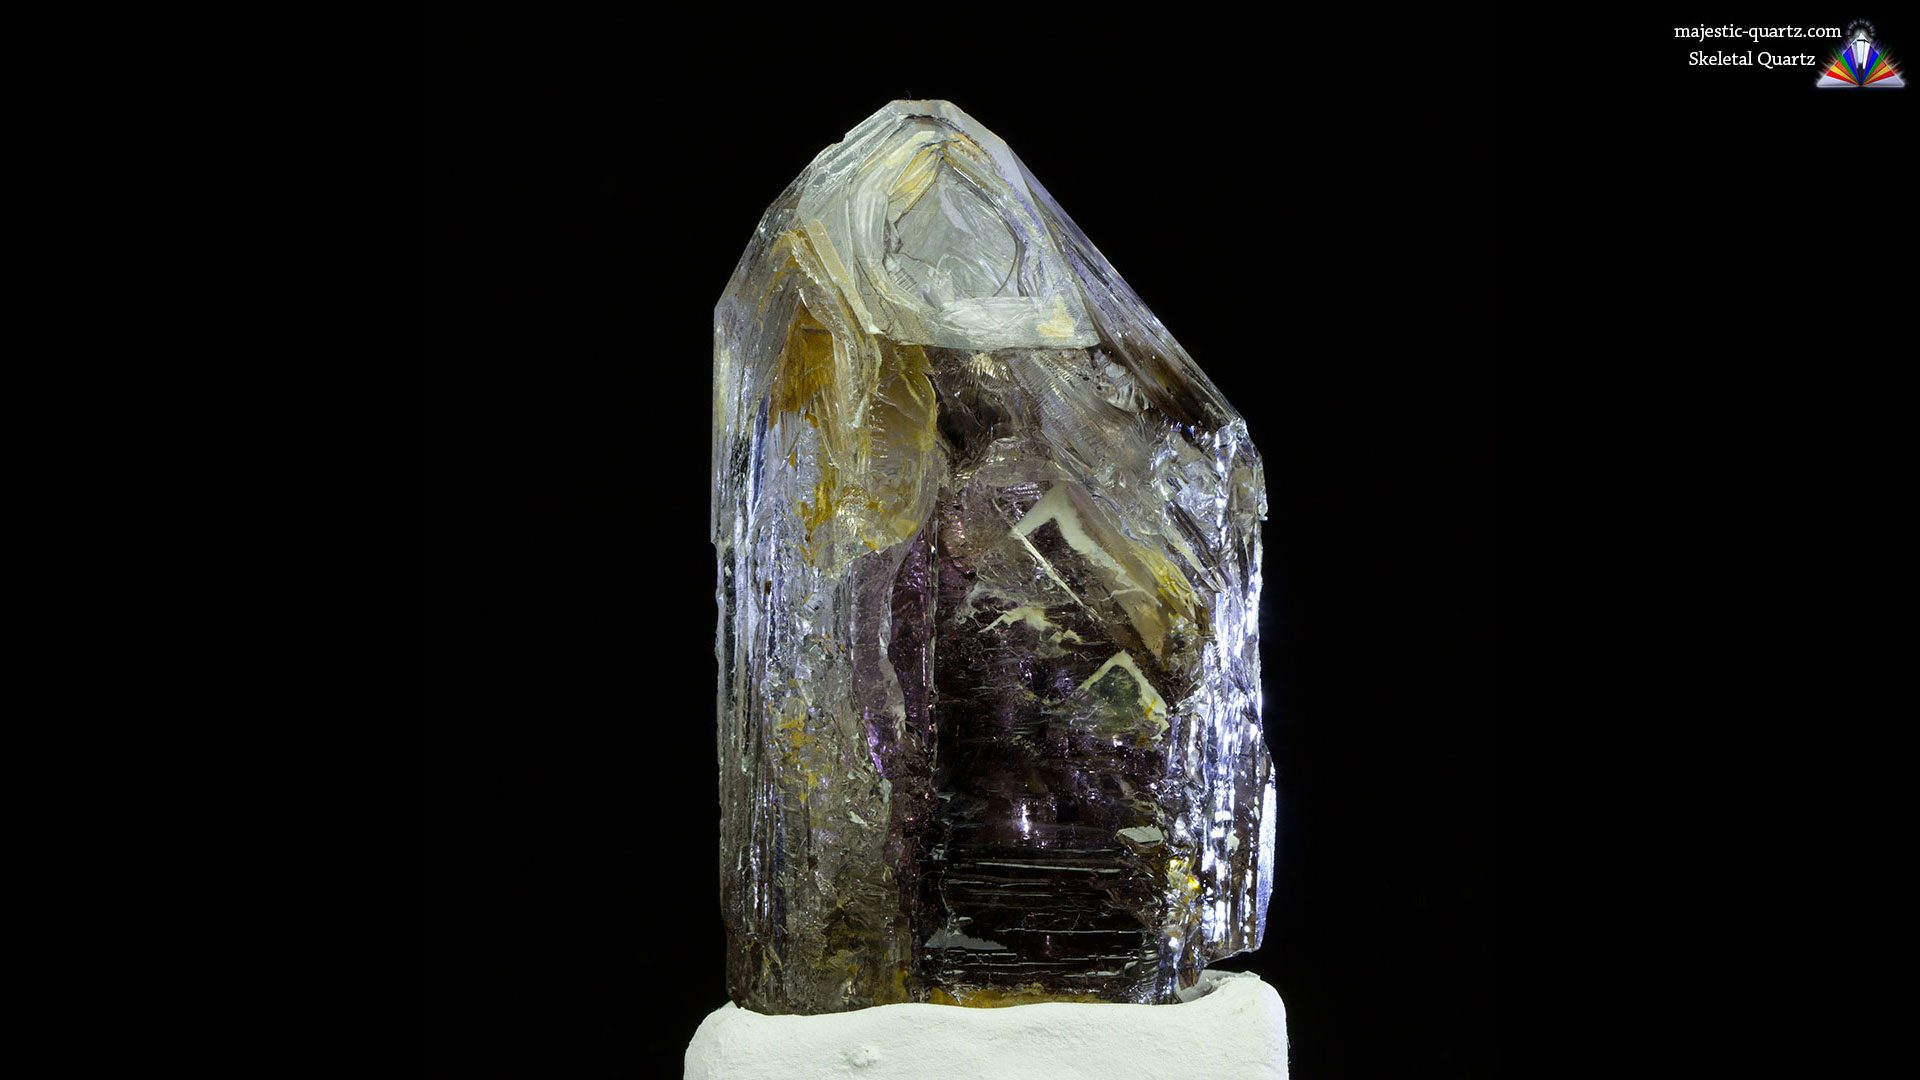 Skeletal Quartz Properties And Meaning Photos Crystal Information